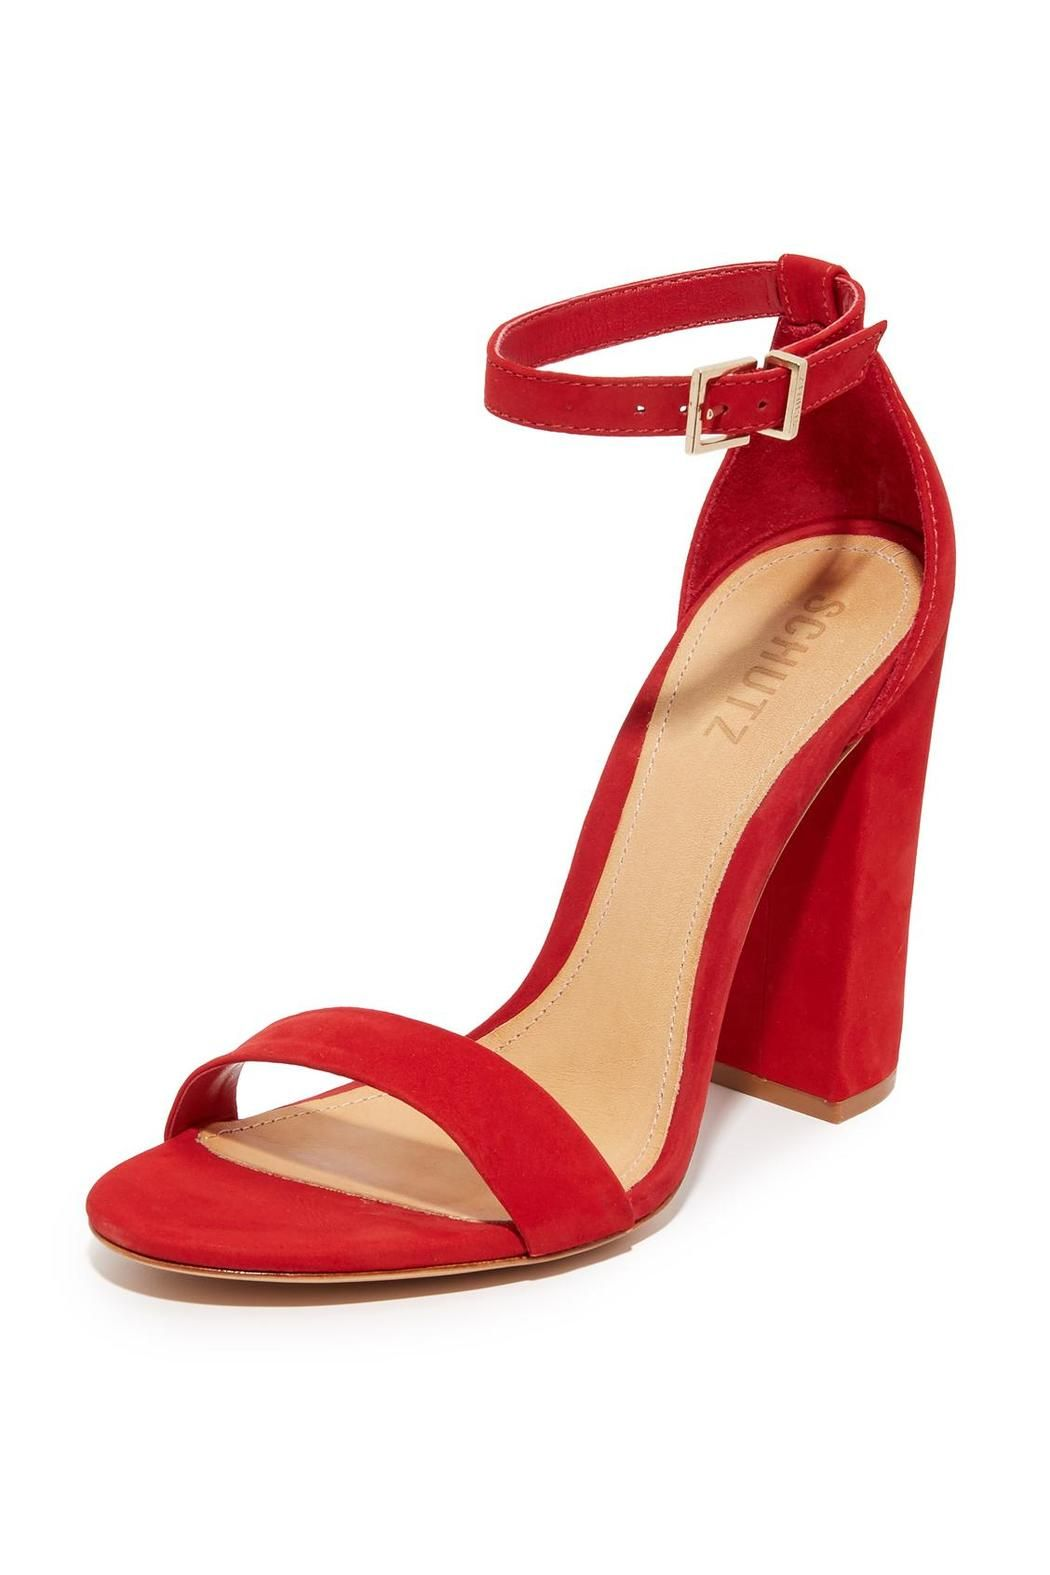 b69d6bfd0802 The Schutz Enida high heel block sandal in scarlet goes with everything and  makes your legs look amazing. The beautiful Scarlet nobuck adds a pop to  any ...